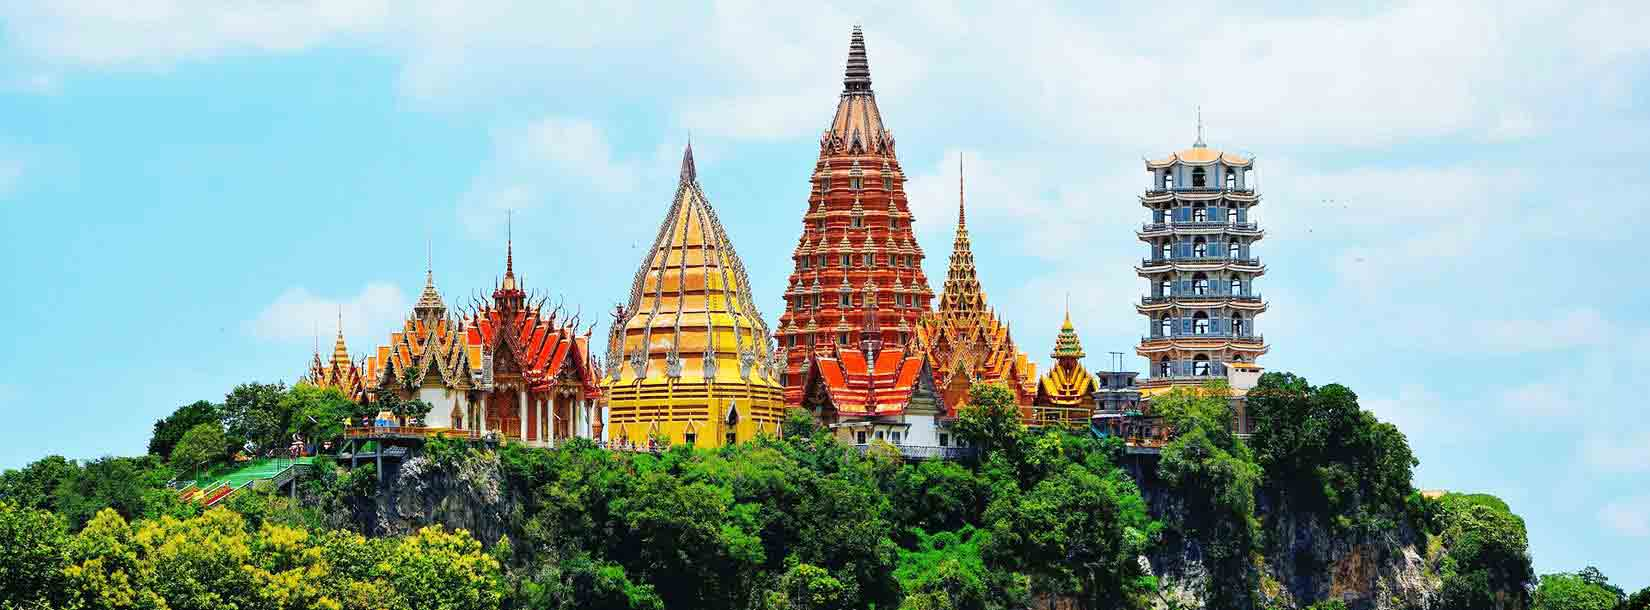 Thailand tour packages from nepal thailand holidays from nepalshop thailand tour packages from nepal thailand holidays from nepalshop in holidays solutioingenieria